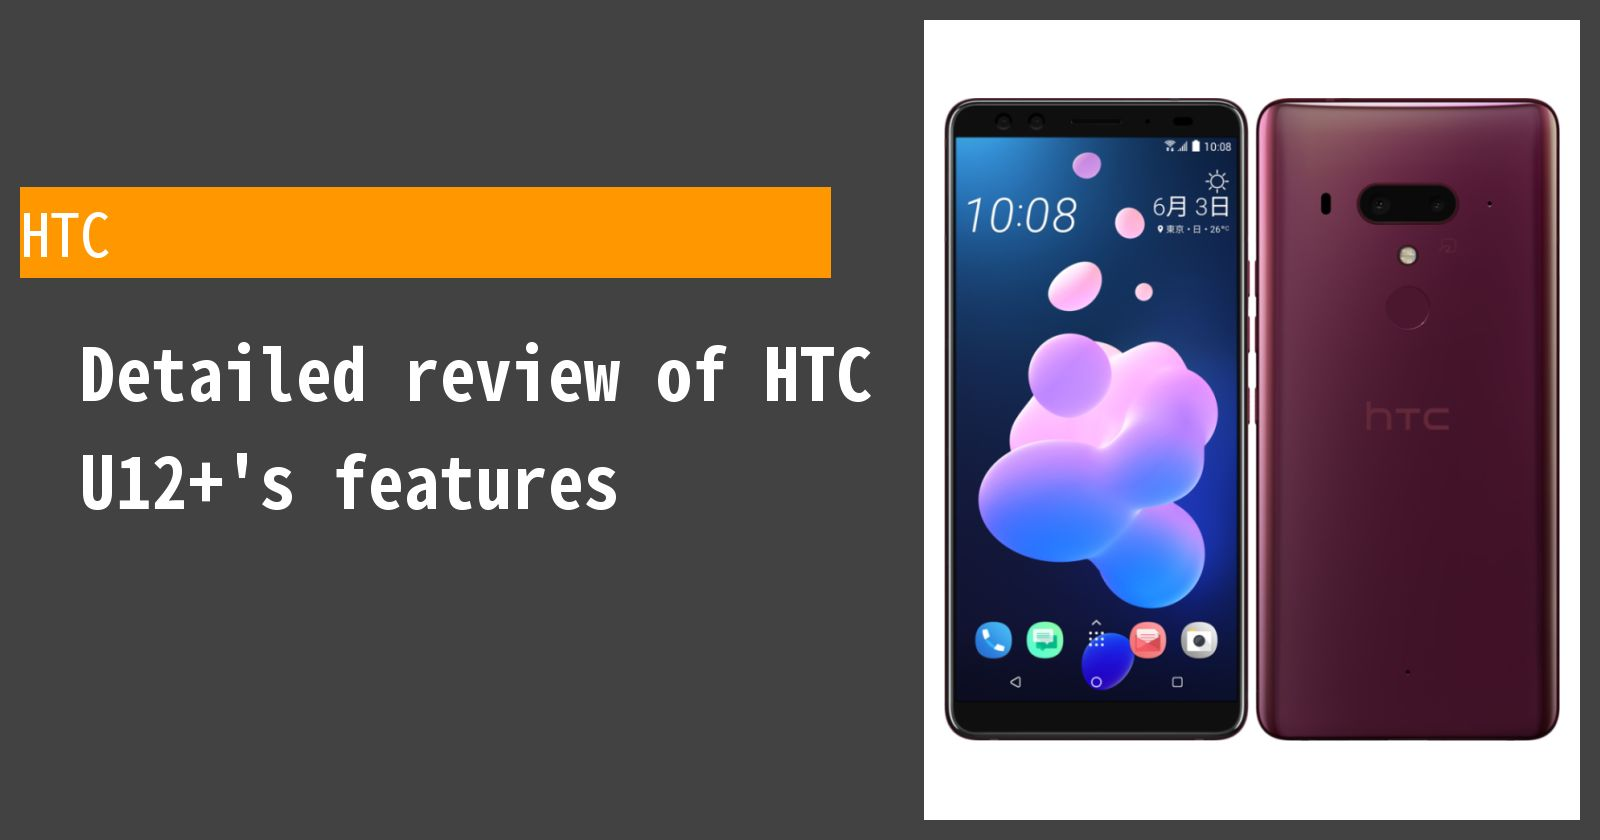 Detailed review of HTC U12+'s features